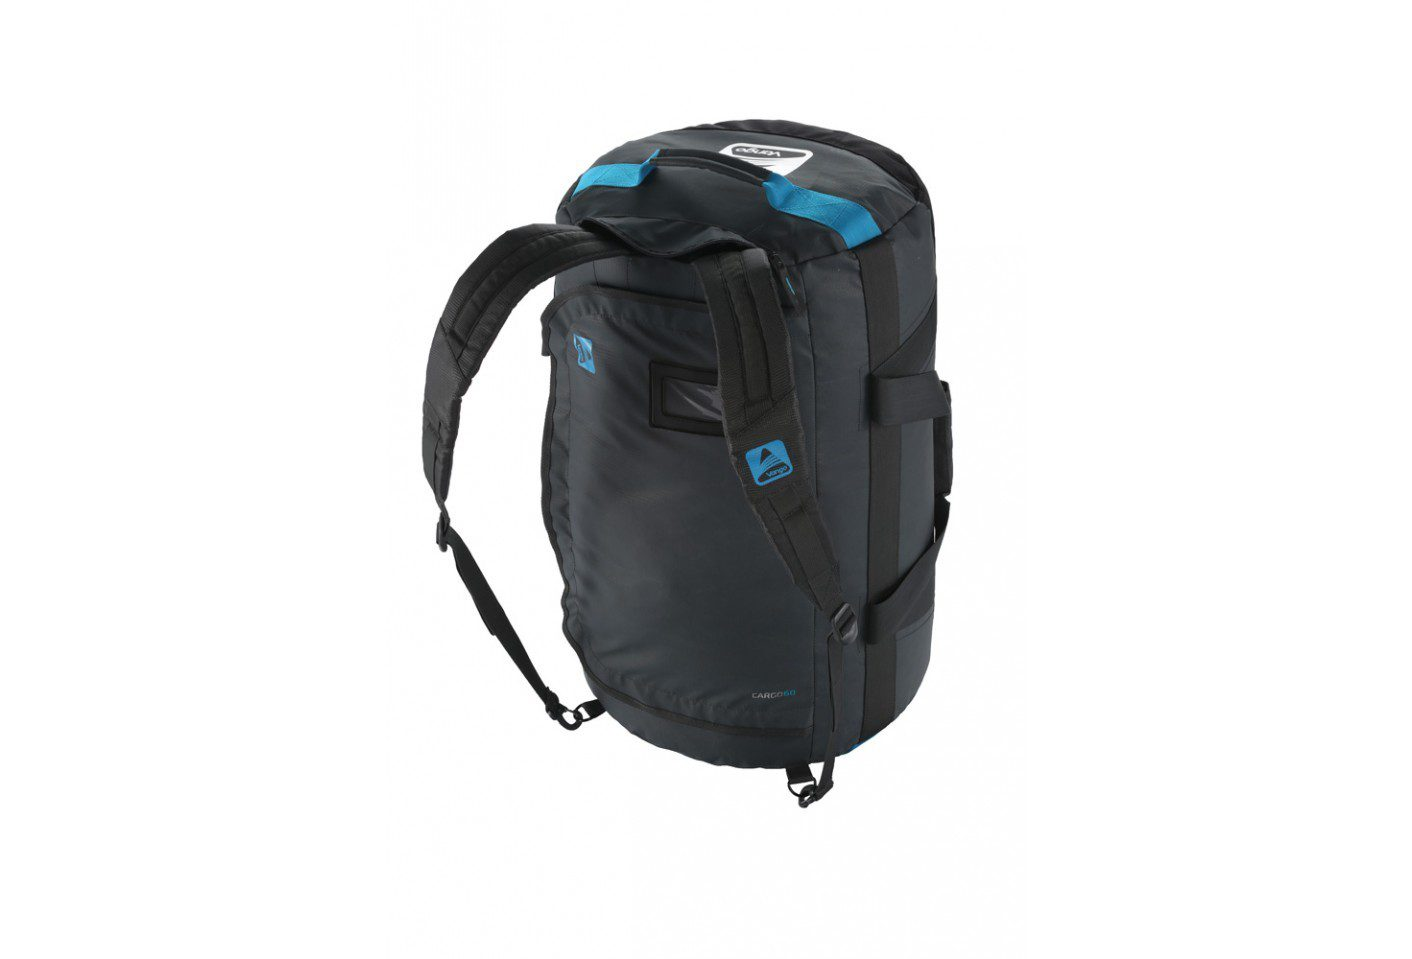 Vango Cargo II 60L backpack